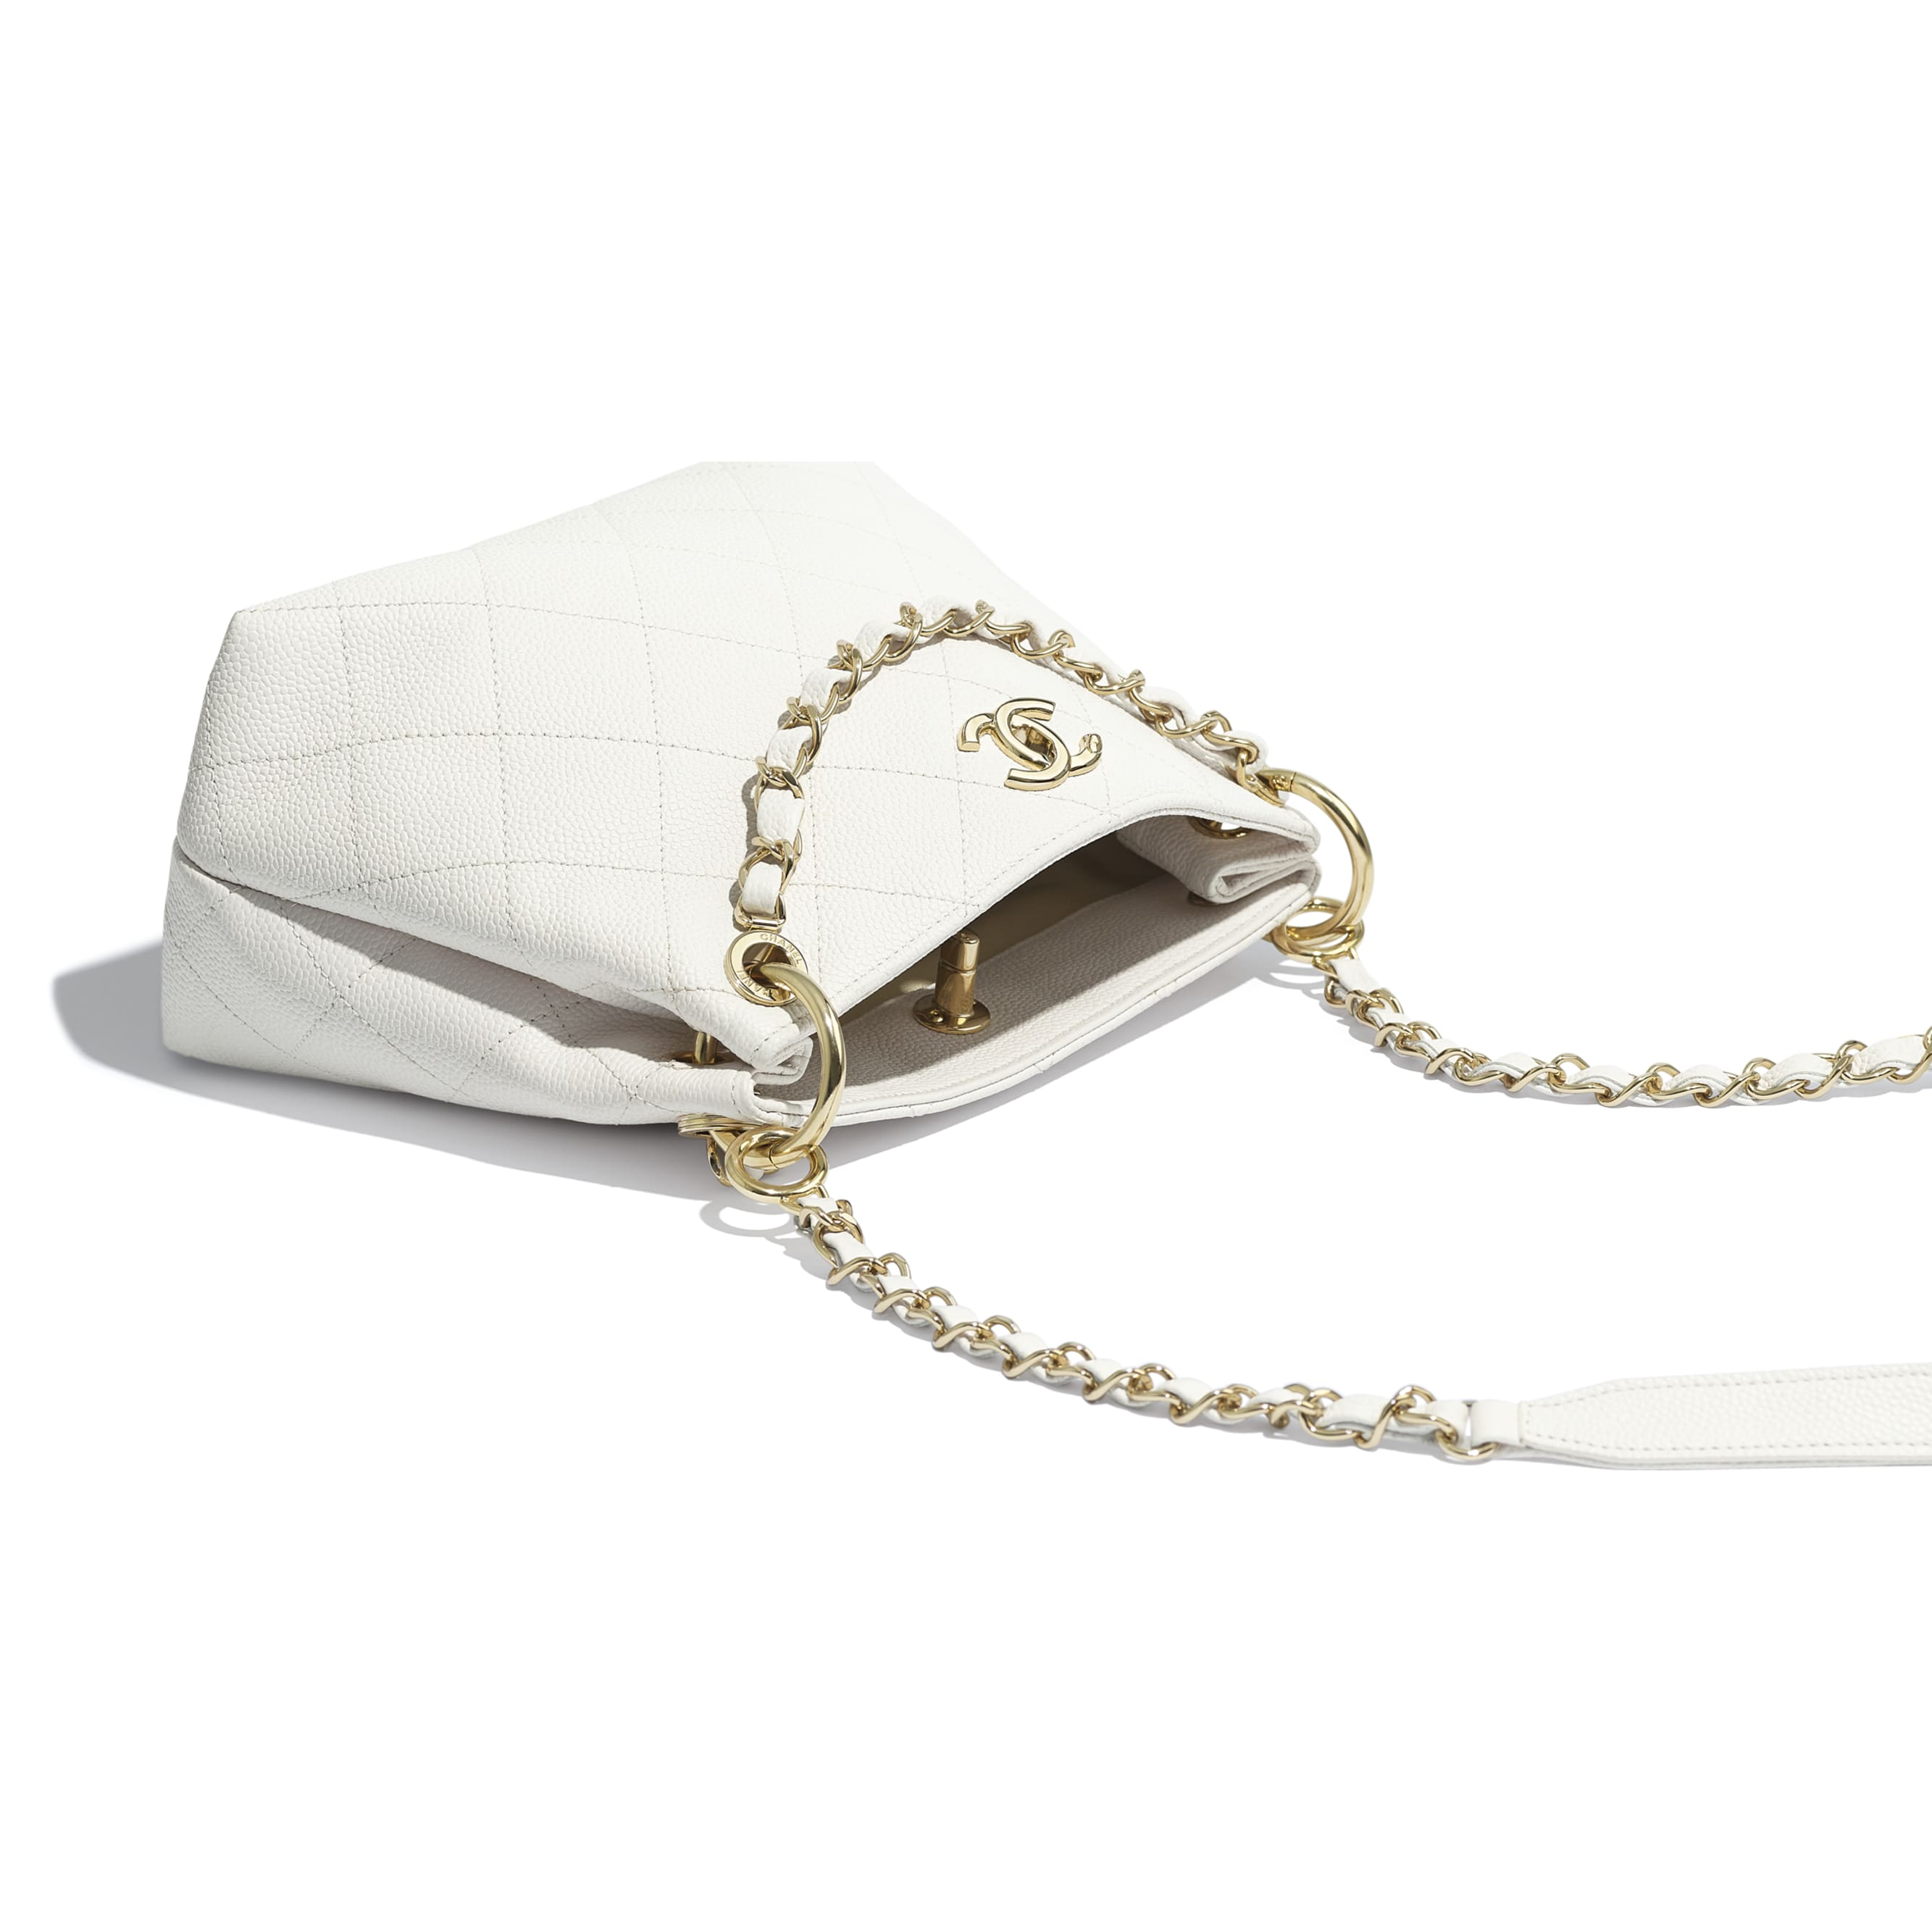 Small Hobo Bag - White - Grained Calfskin & Gold-Tone Metal - CHANEL - Other view - see standard sized version